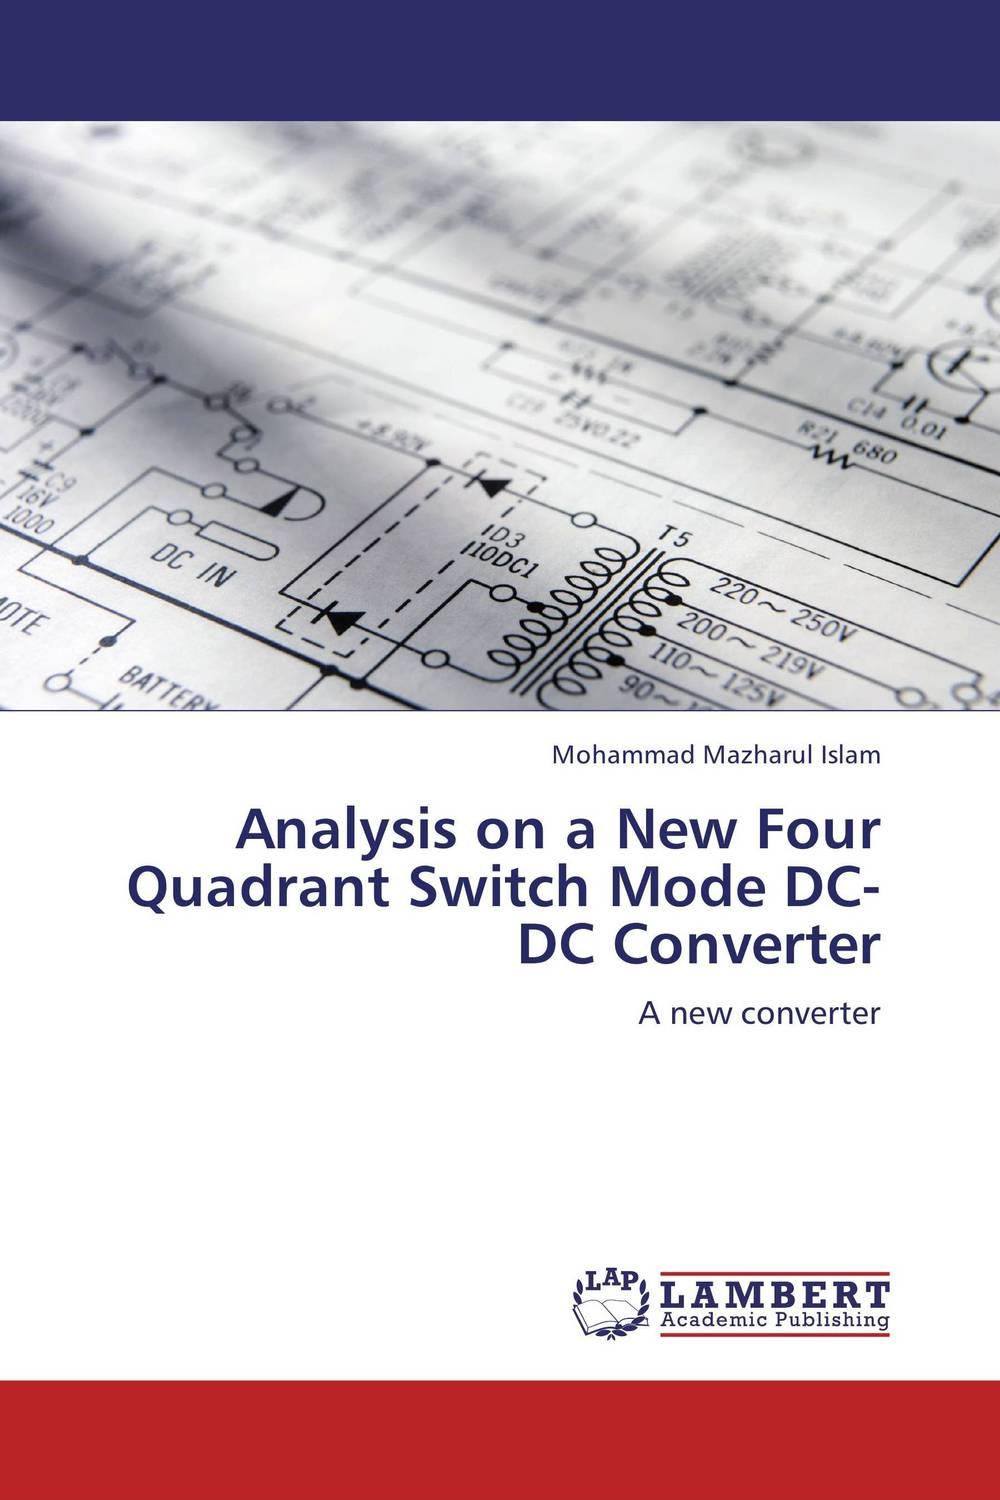 Analysis on a New Four Quadrant Switch Mode DC-DC Converter